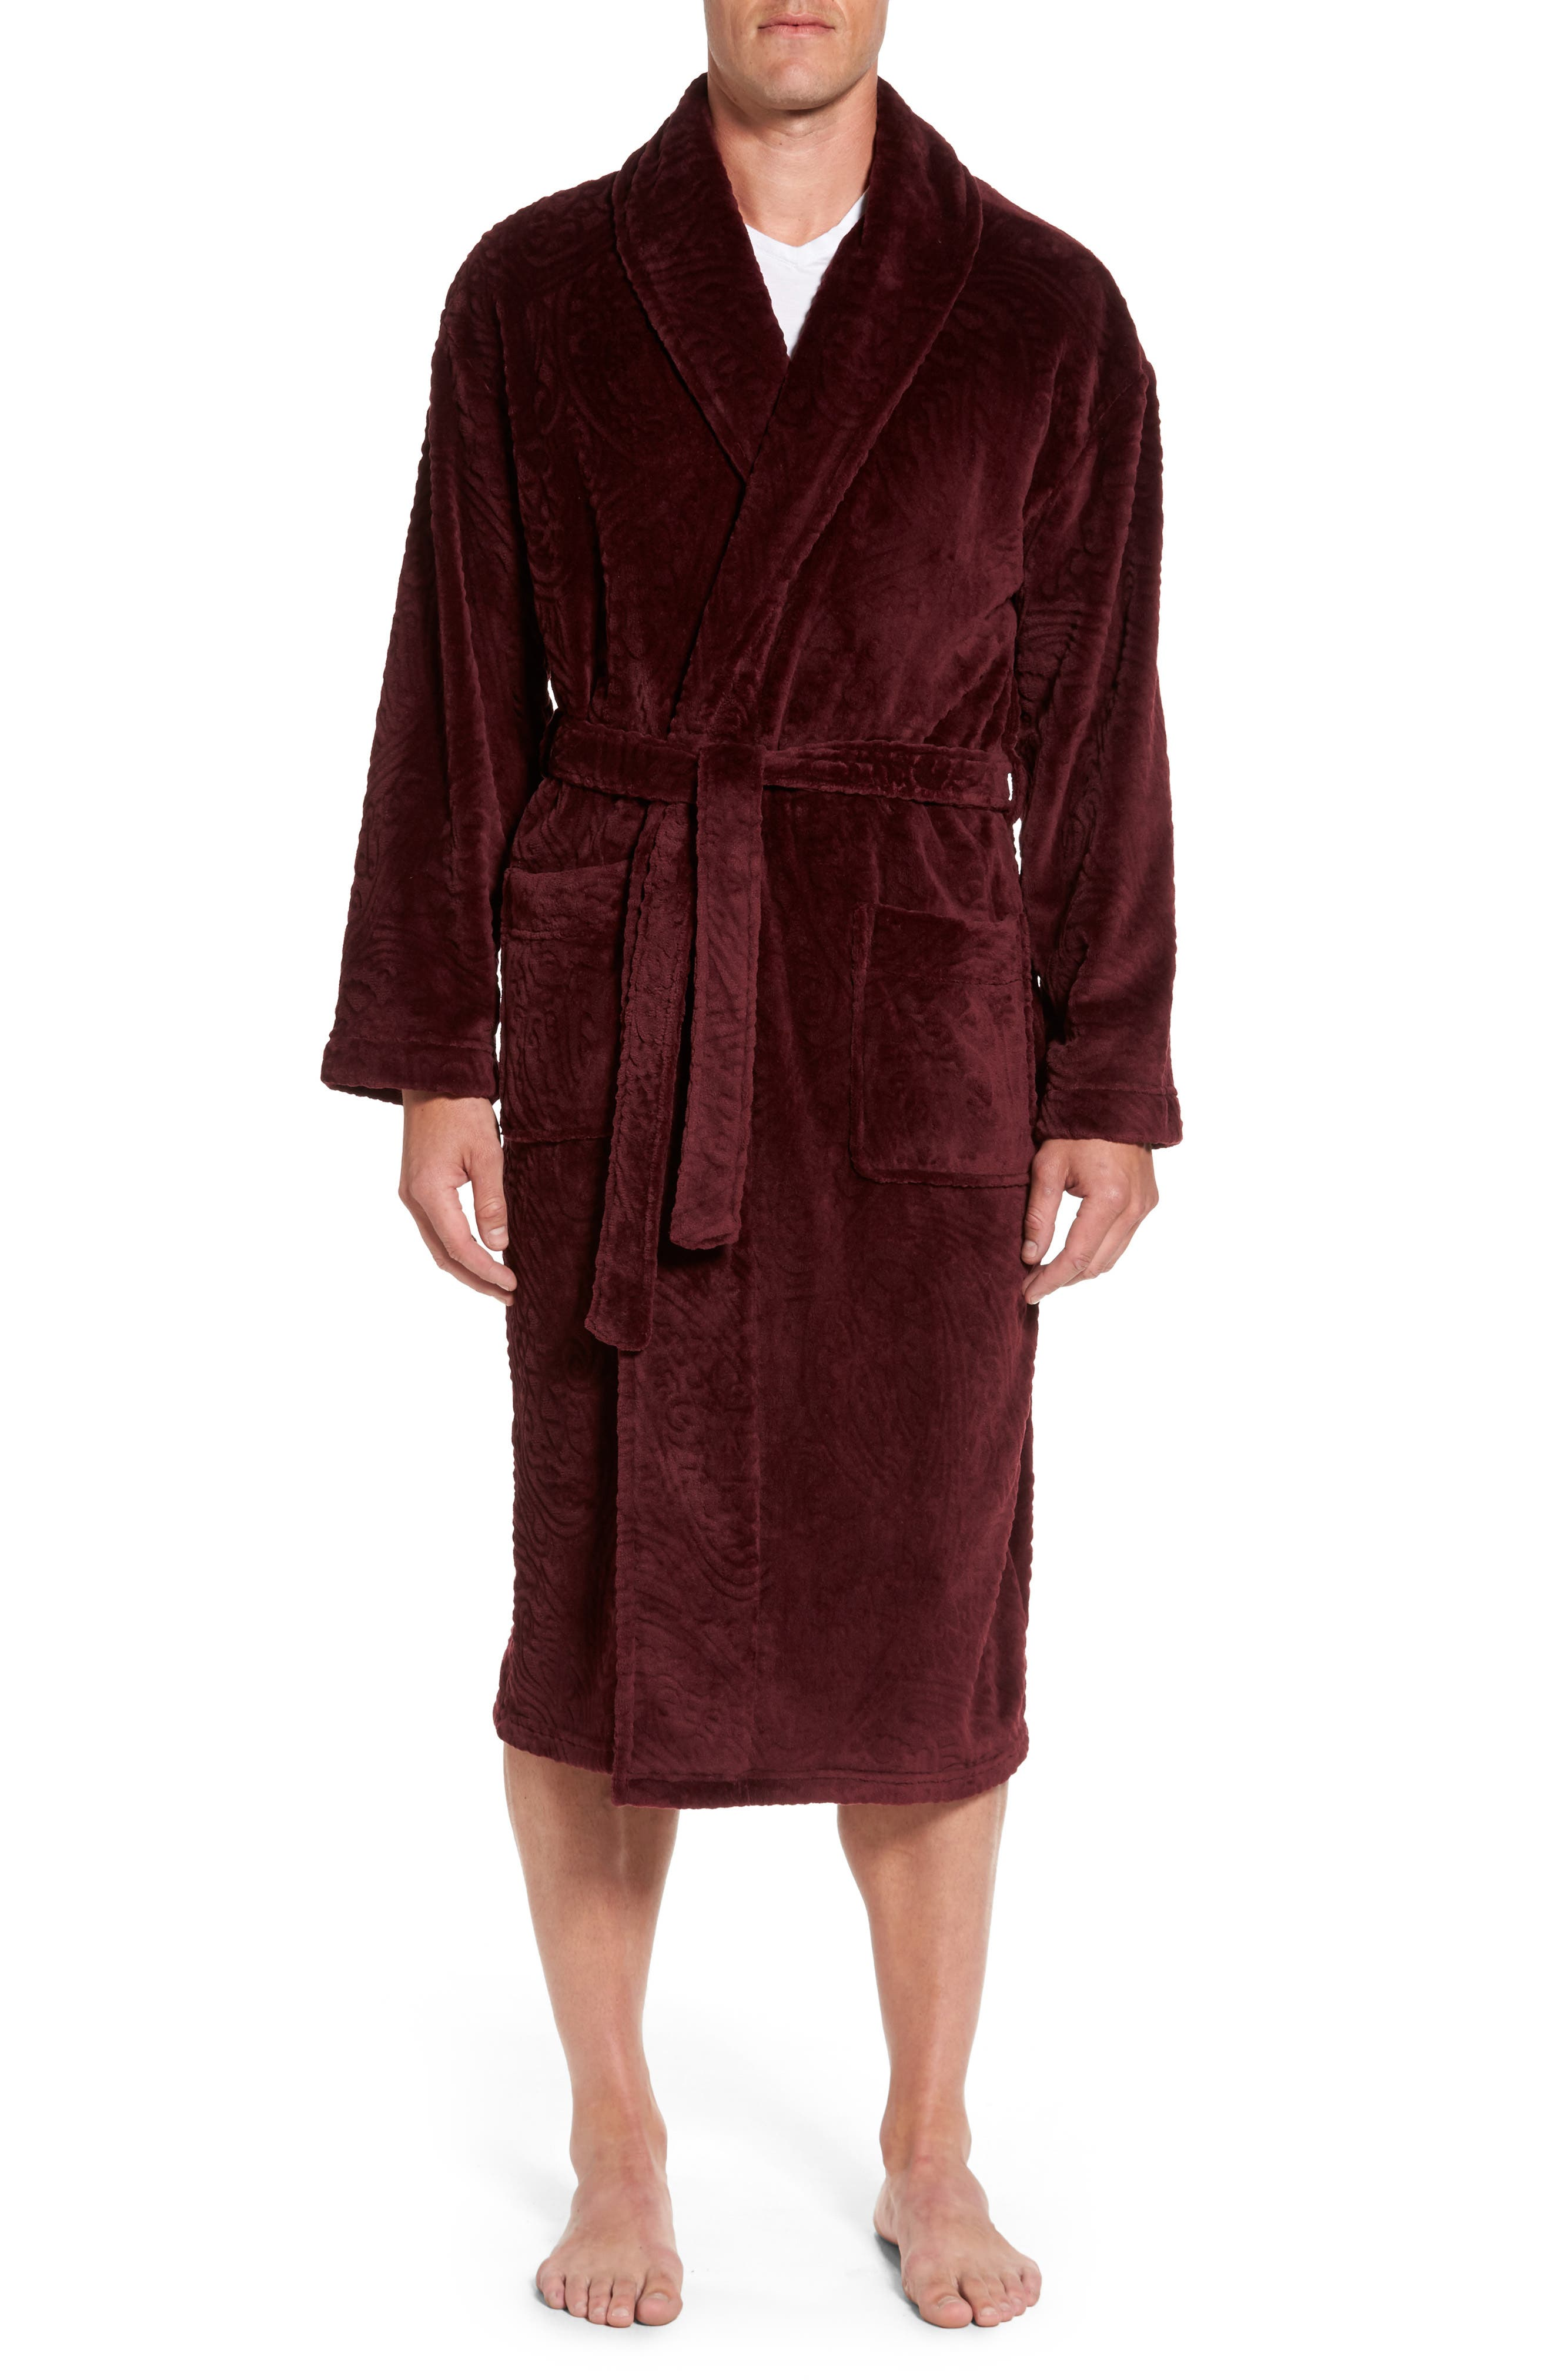 MIDTOWN ROBE